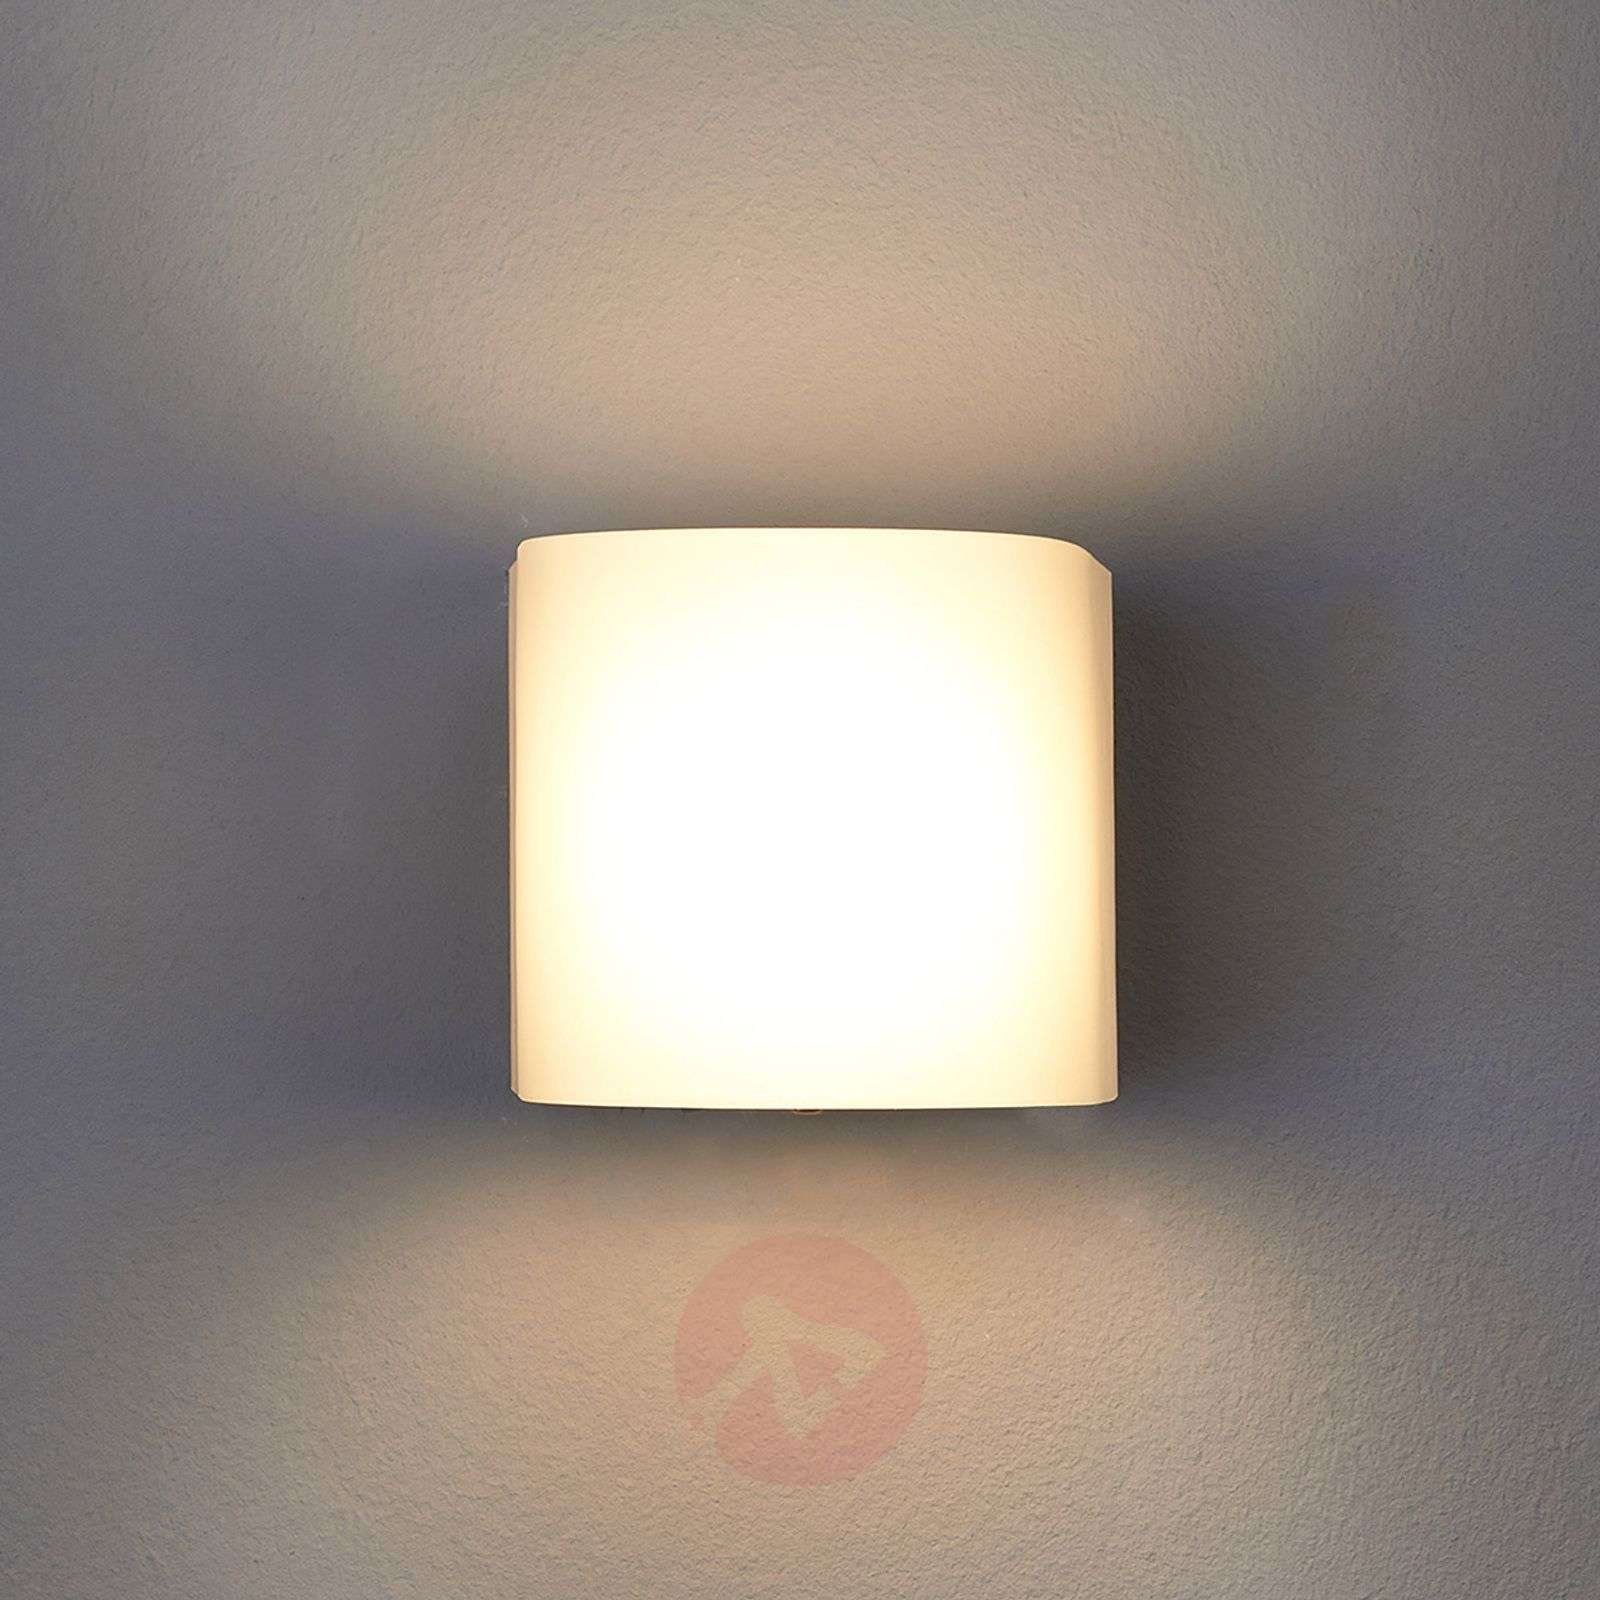 Lukes LED Wall Light Timeless Beautiful Warm White-9614033-01